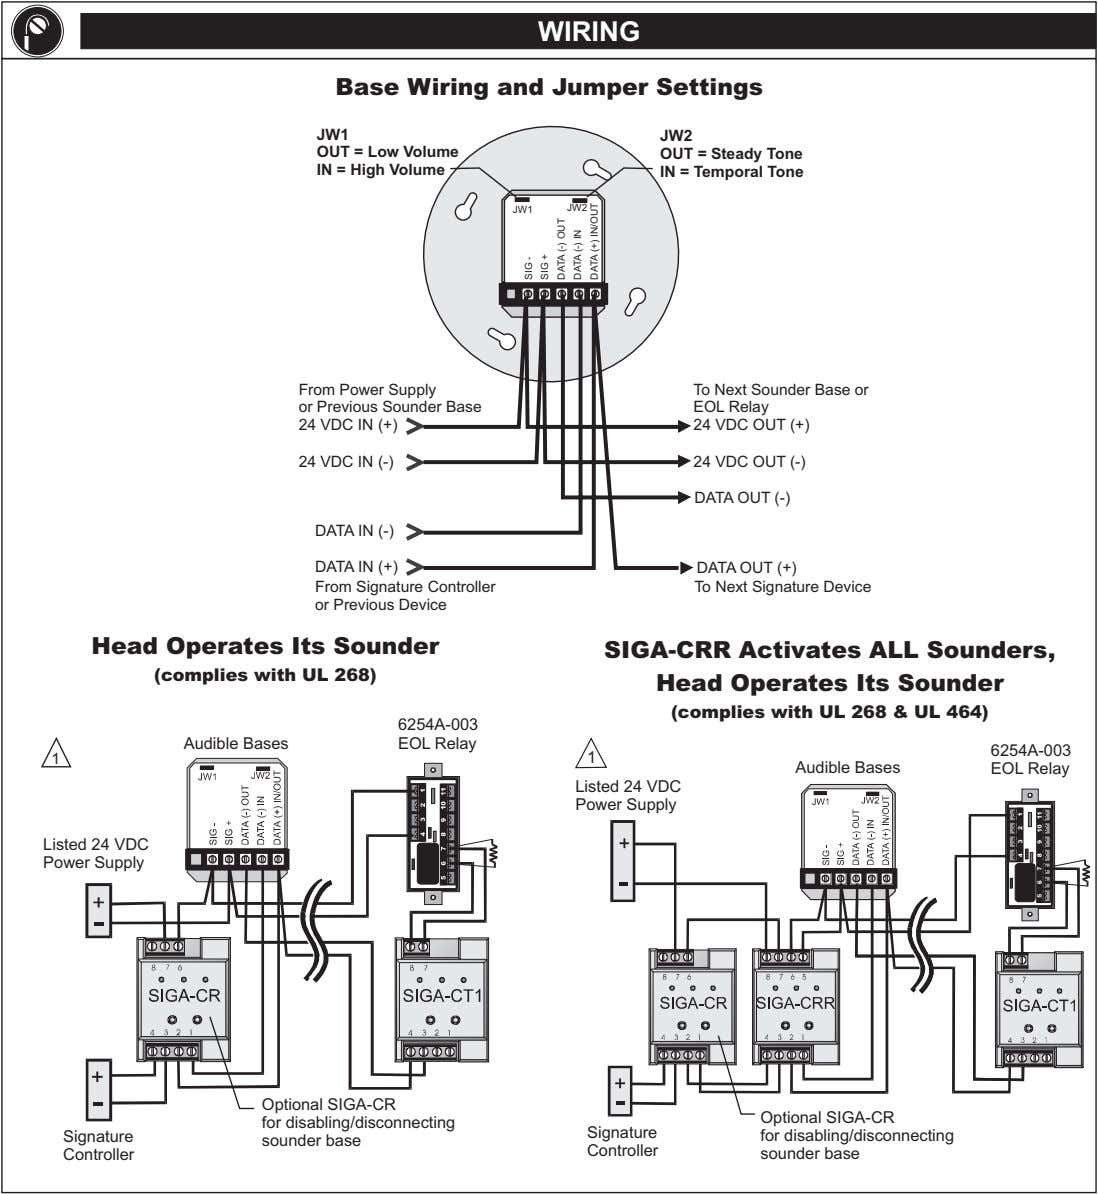 WIRING Base Wiring and Jumper Settings JW1 JW2 OUT = Low Volume IN = High